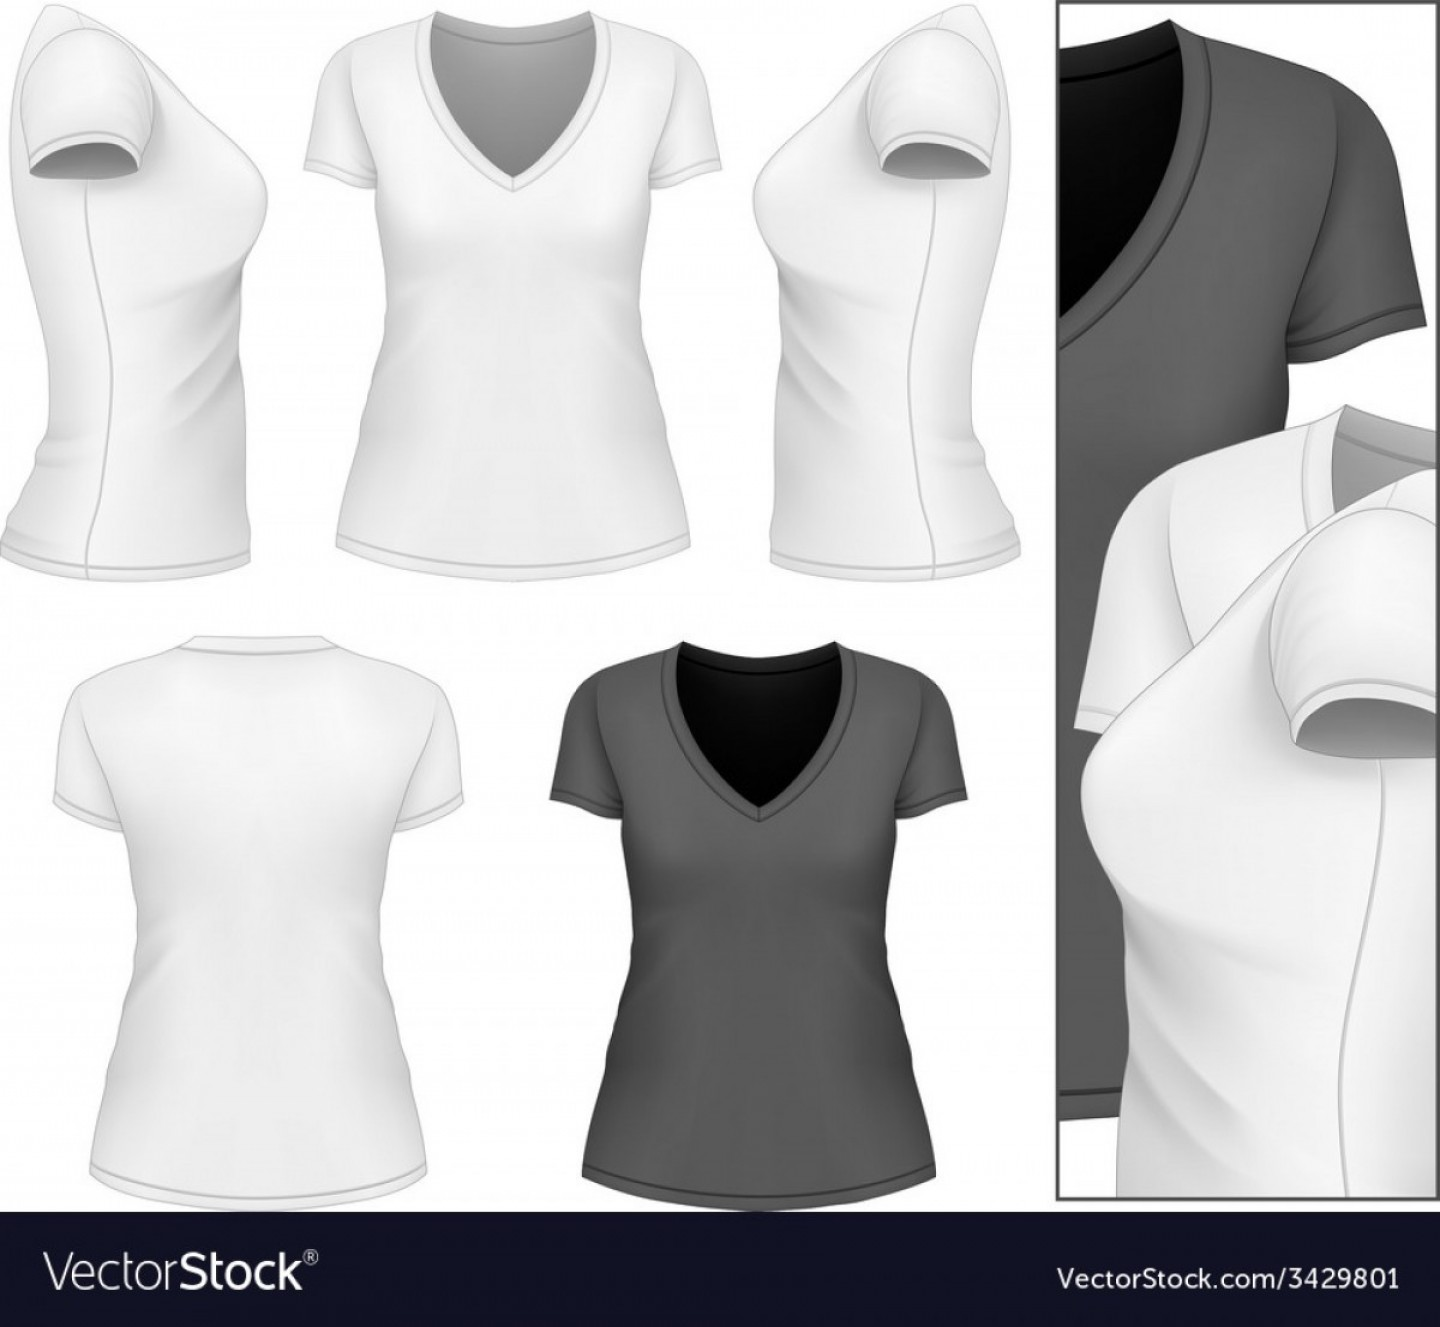 Vector Cancer Shirts: Pregnancy T Shirt Mock Up Vector